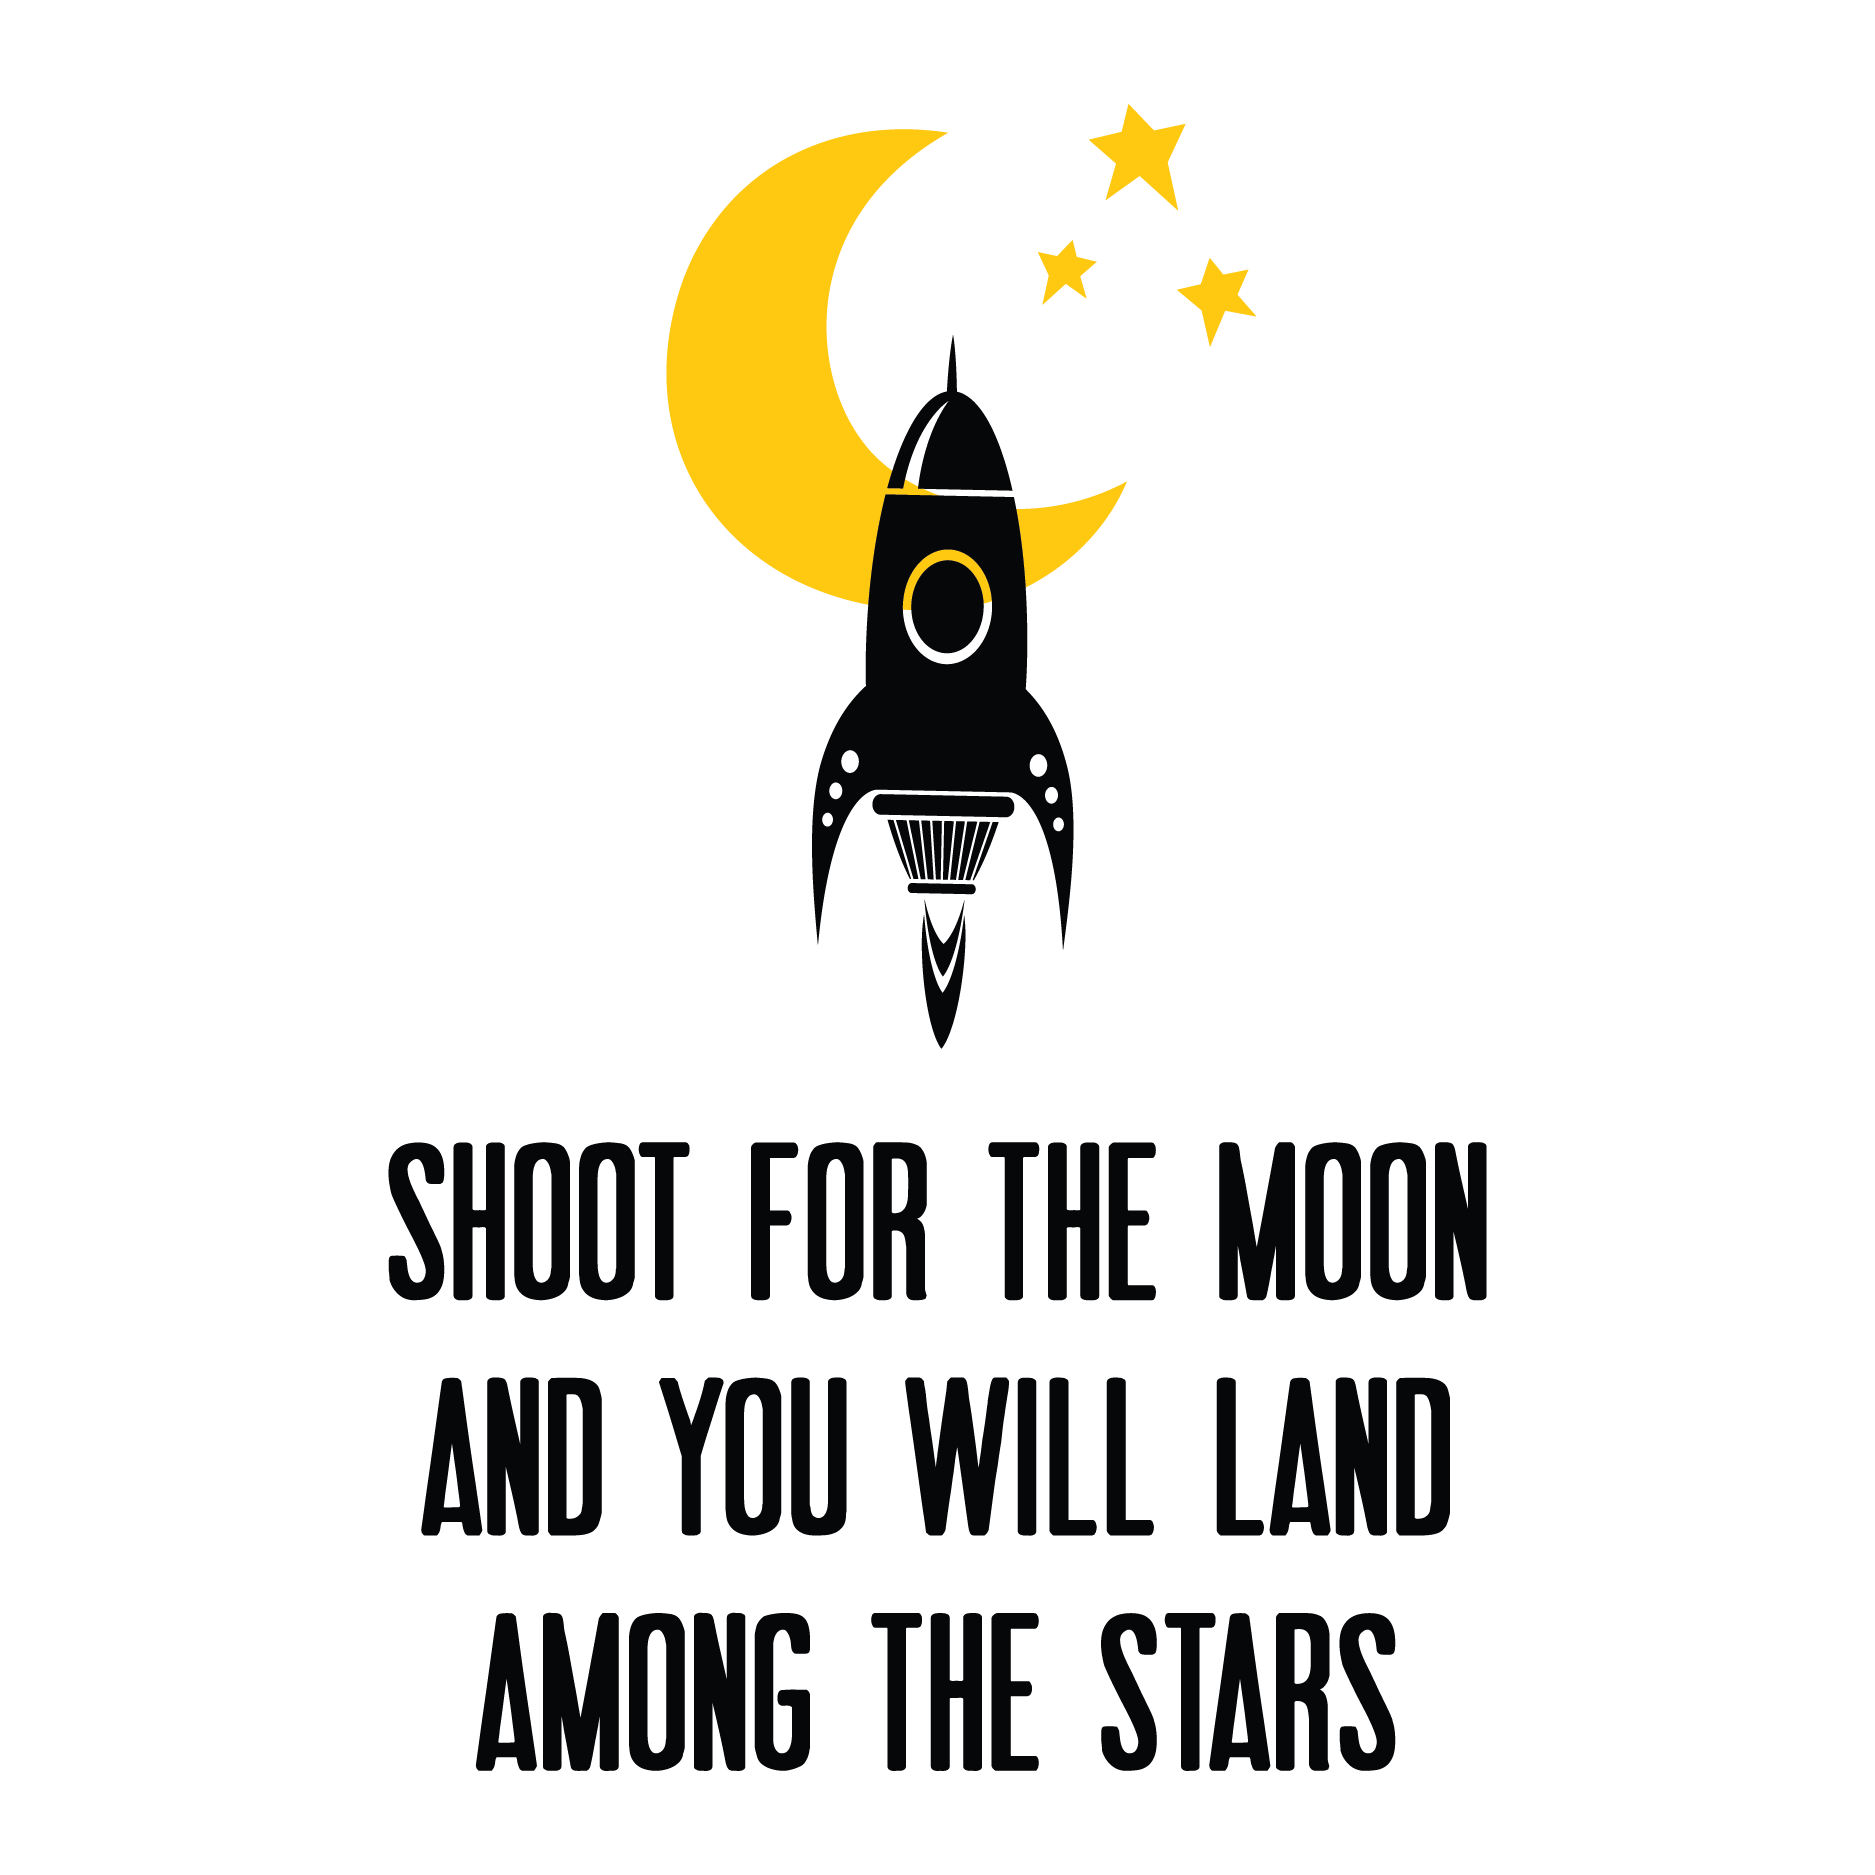 Inspirational Quotes On Pinterest: Shoot For The Moon Wall Quotes™ Decal